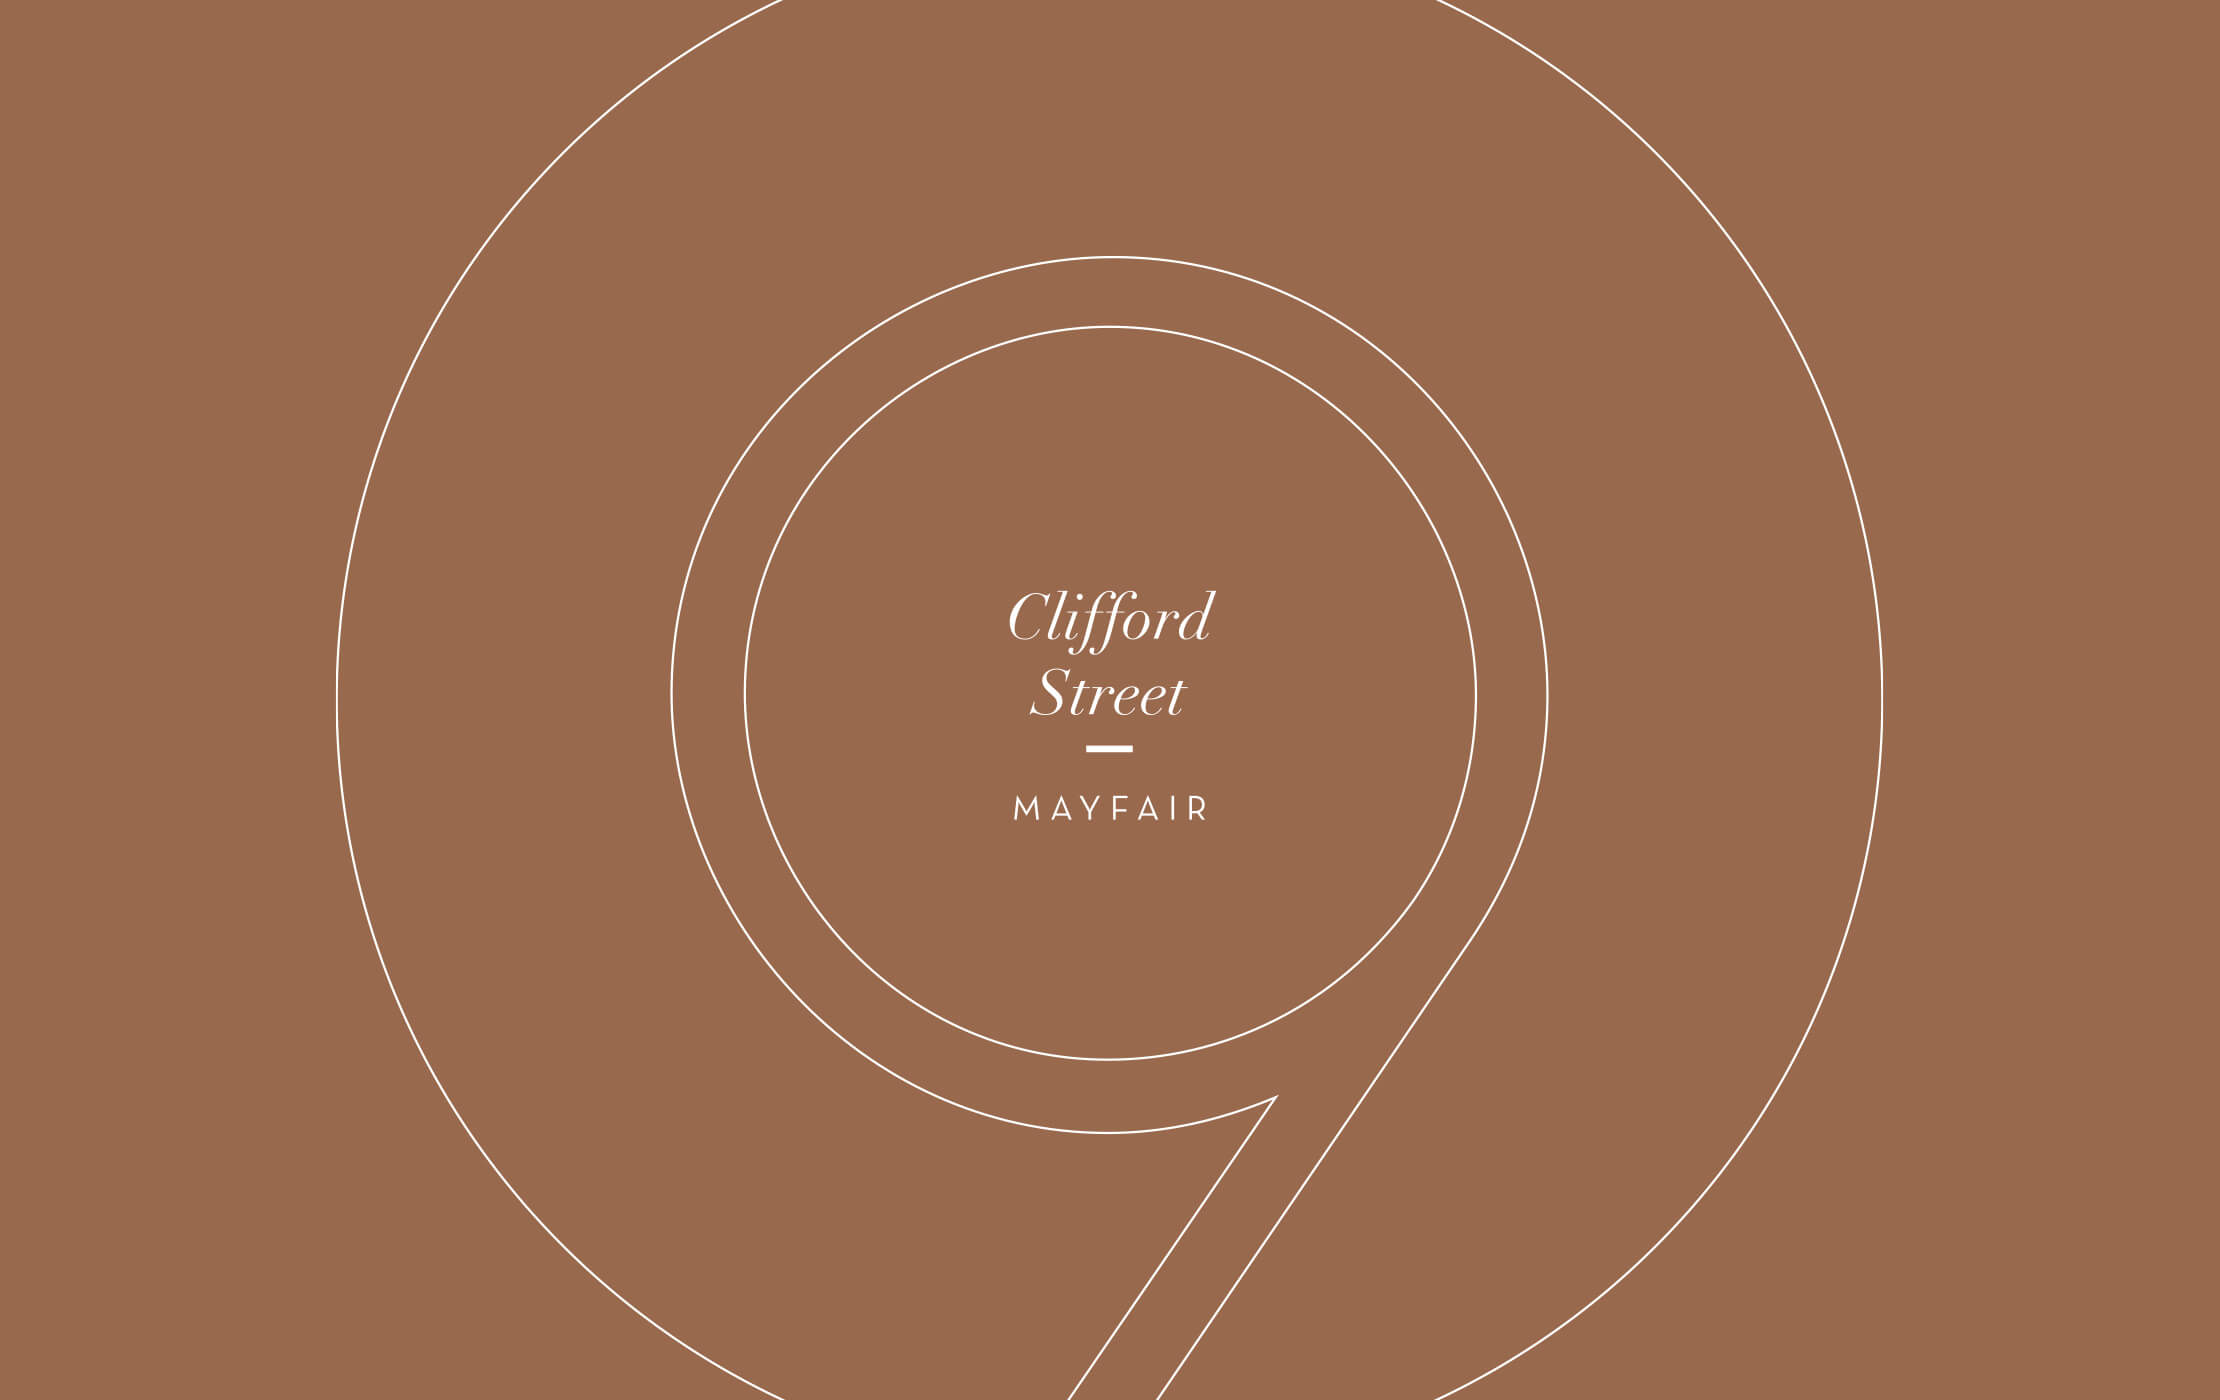 White 9 Clifford Street logo printed on a dark gold brochure cover